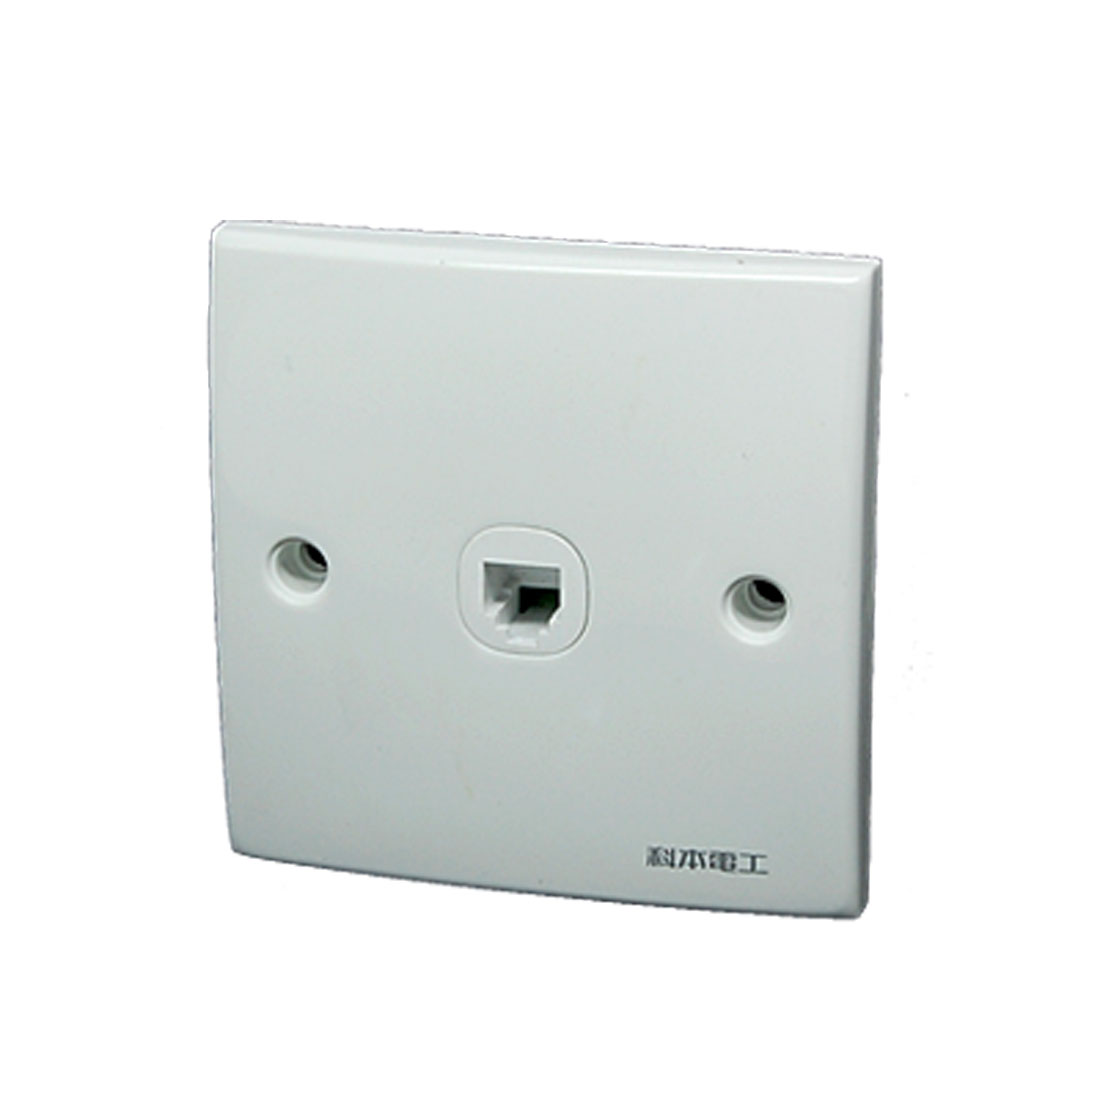 1 Gang 4 Pin RJ11 Telephone Outlet Wall Mount Plate